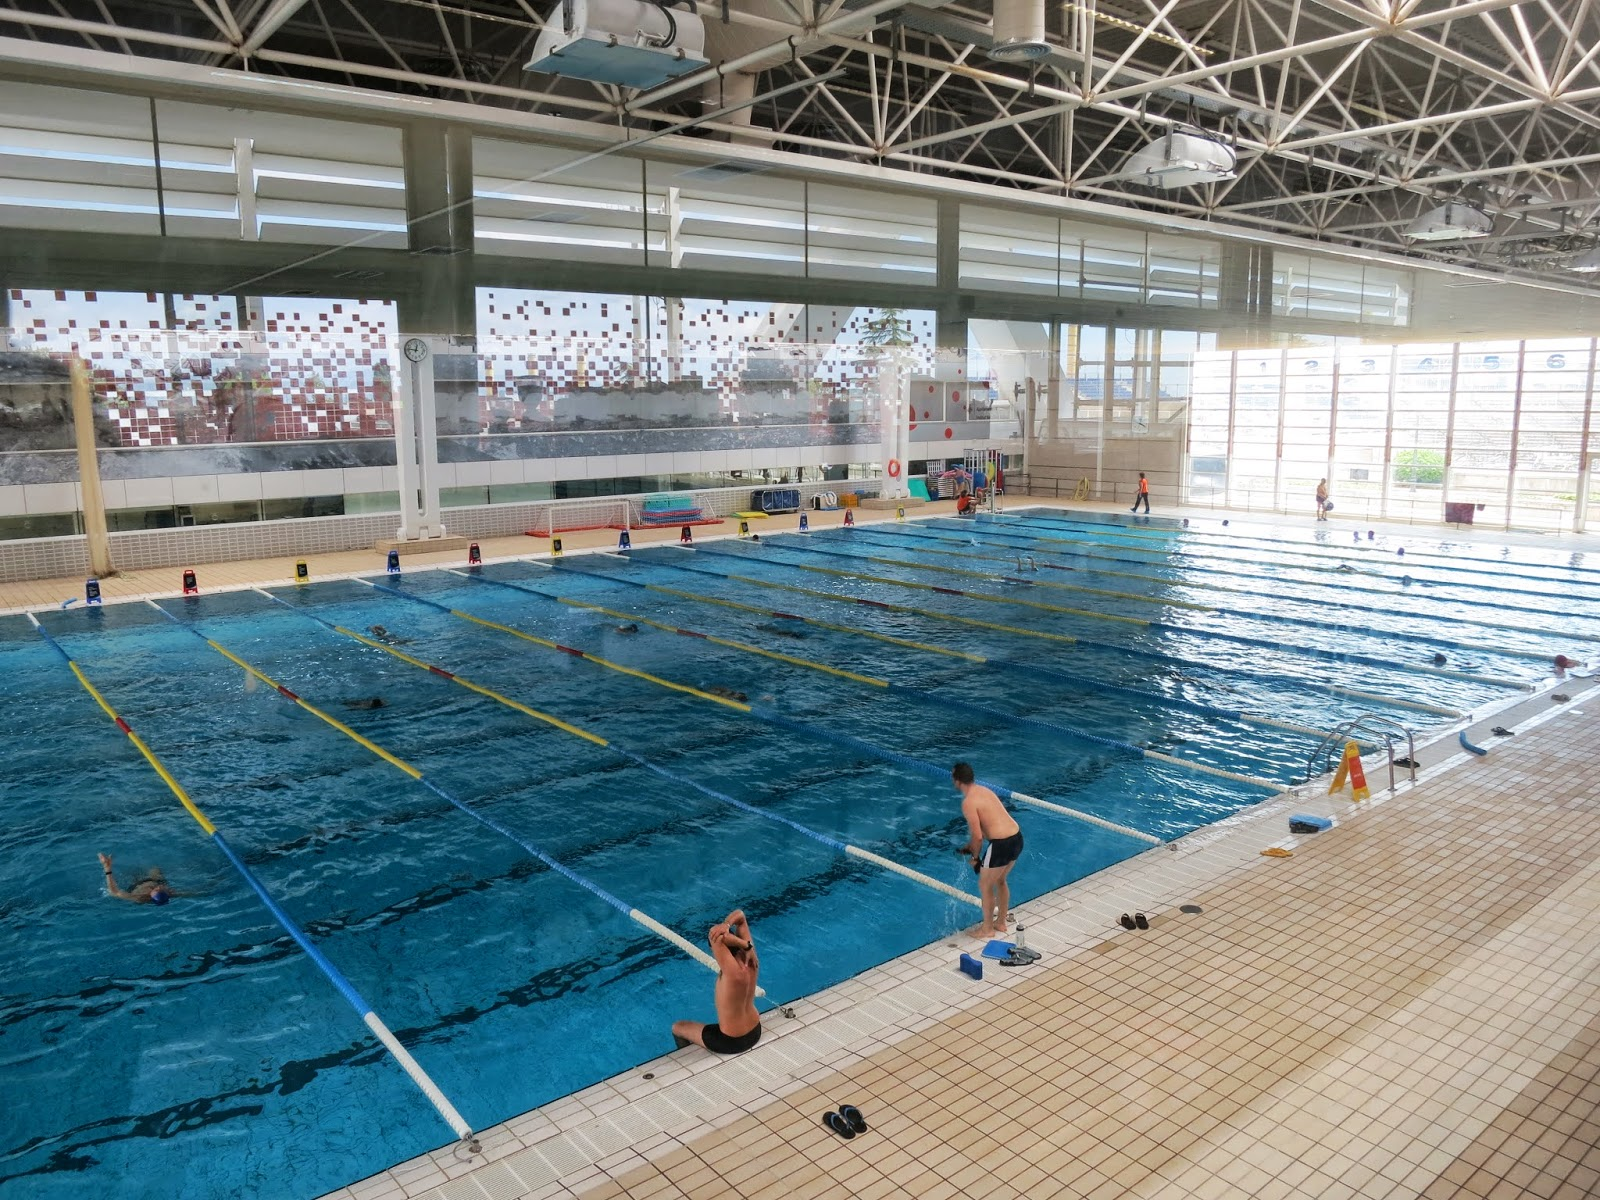 Piscines bernat picornel olympic swimming pool for Home piscine